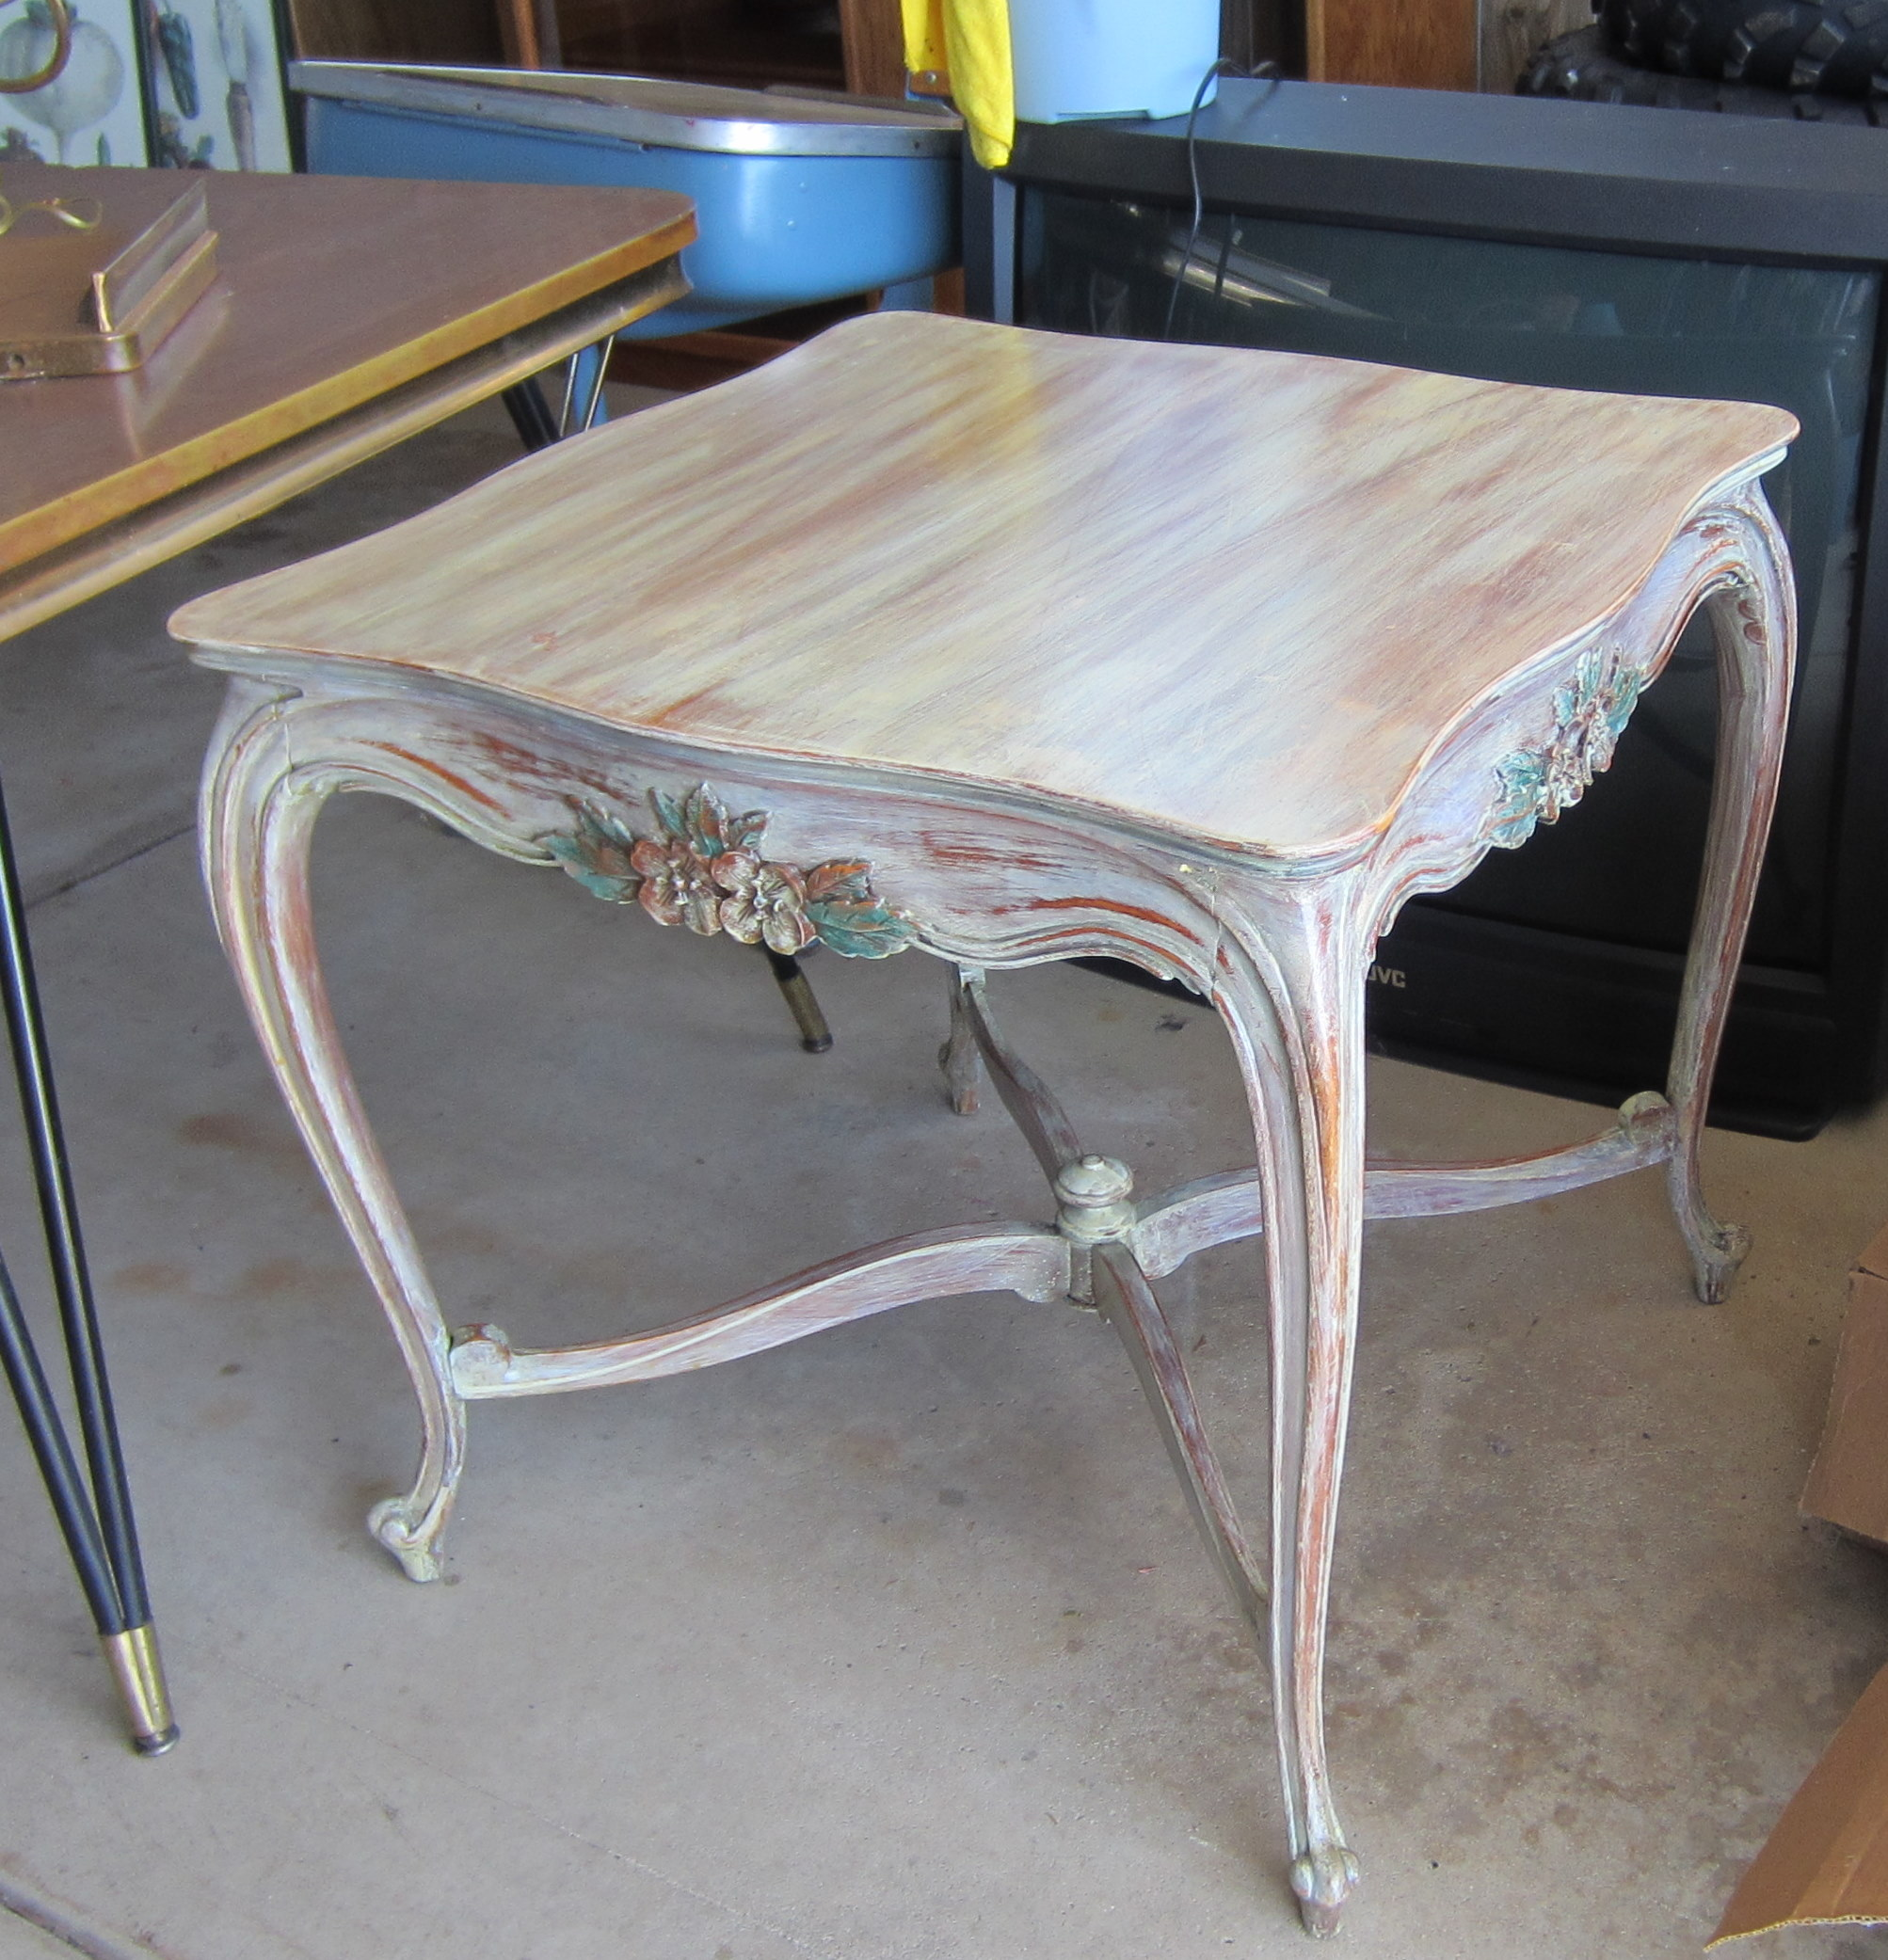 Whitewash Old Furniture To Give It A New Life